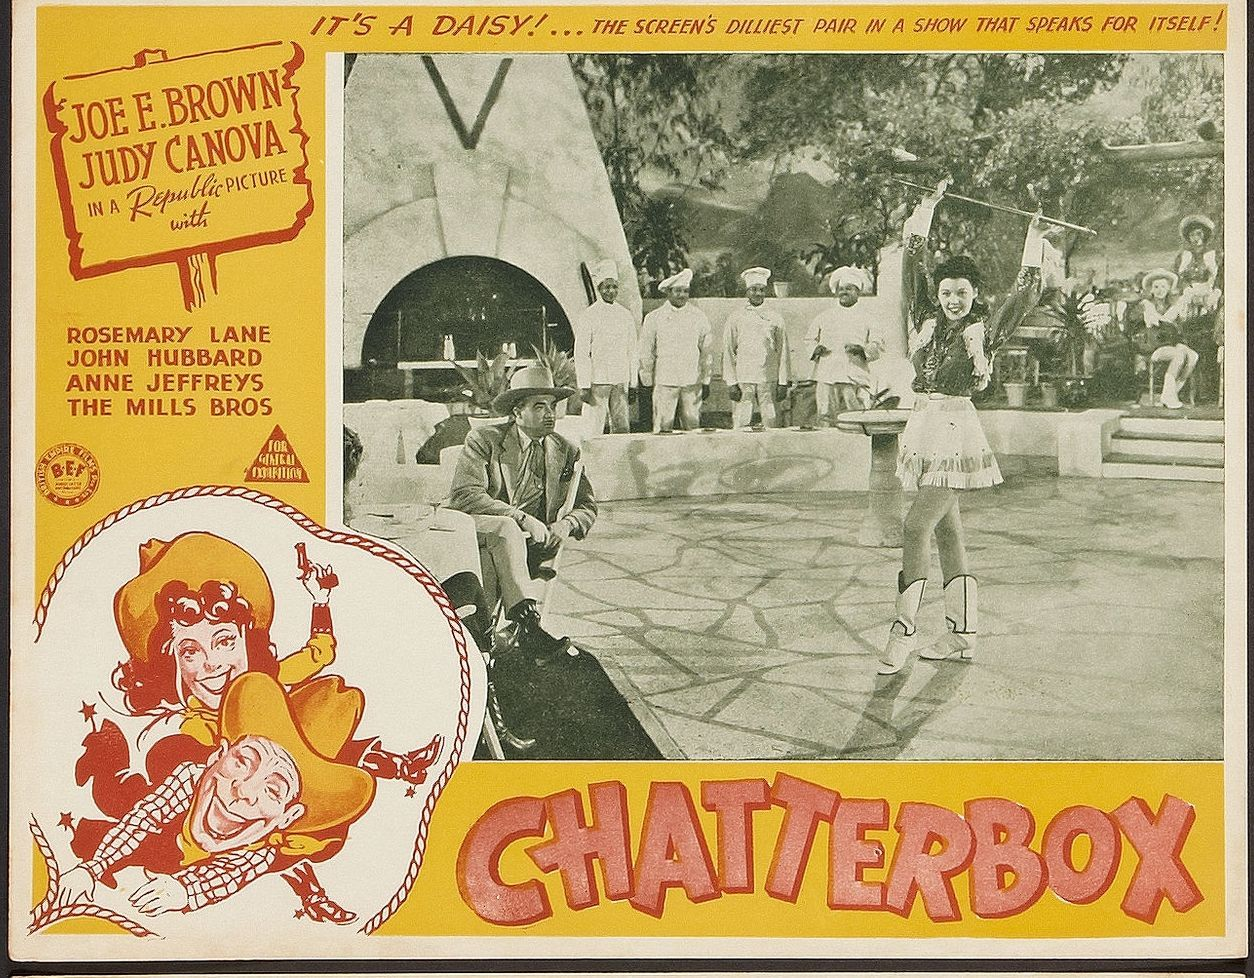 Dorothy Andre, John Hubbard, Mary Kenyon, and The Mills Brothers in Chatterbox (1943)